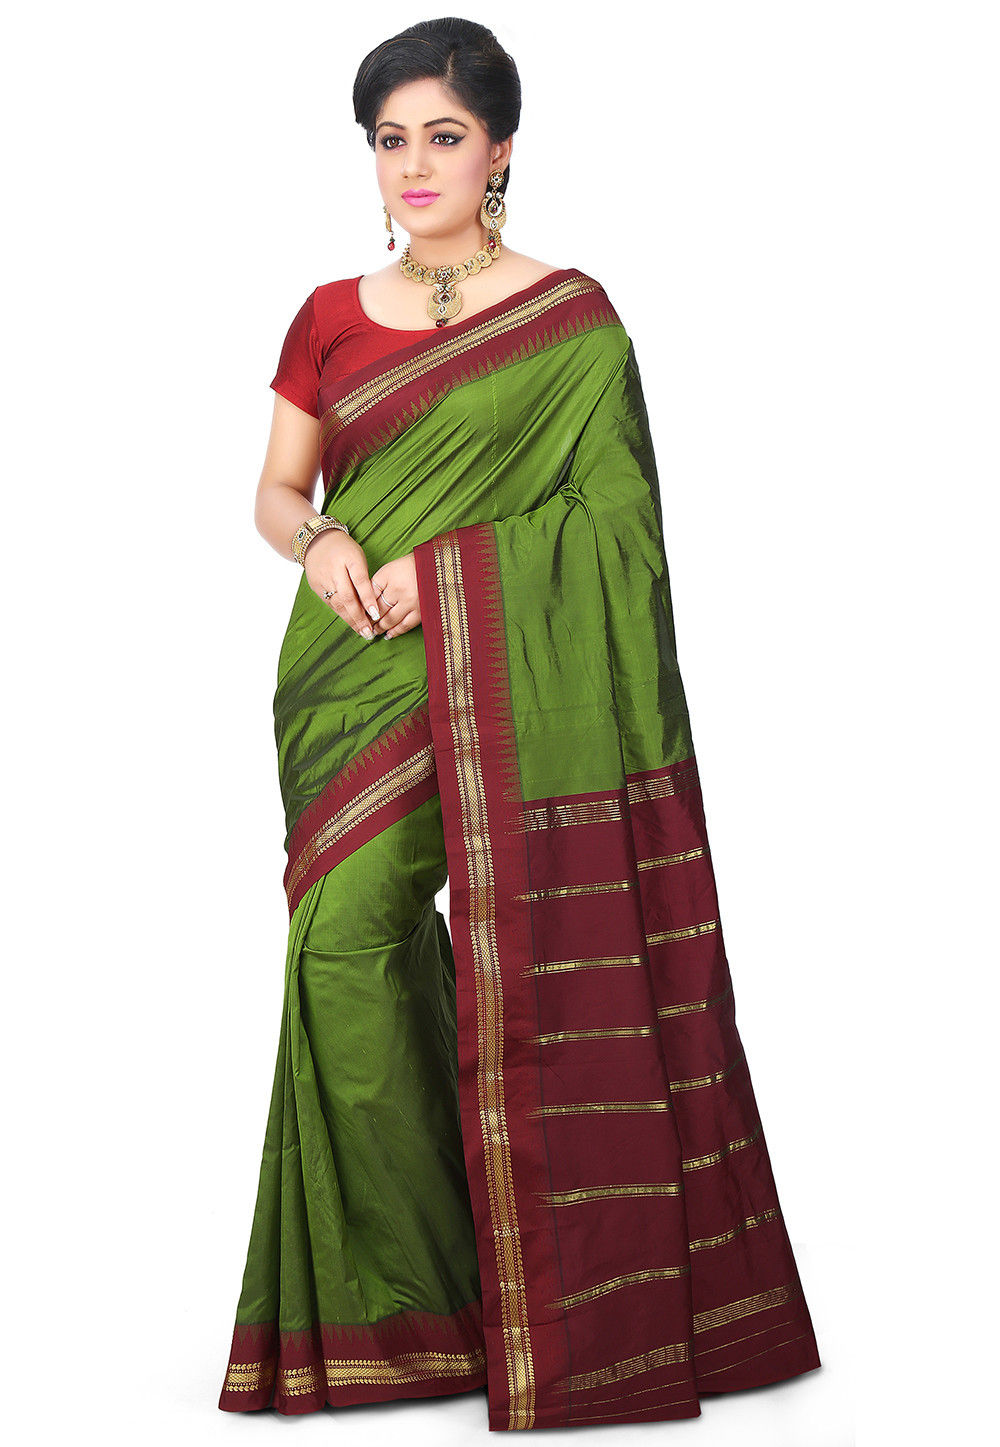 Kanchipuram Saree in Olive Green